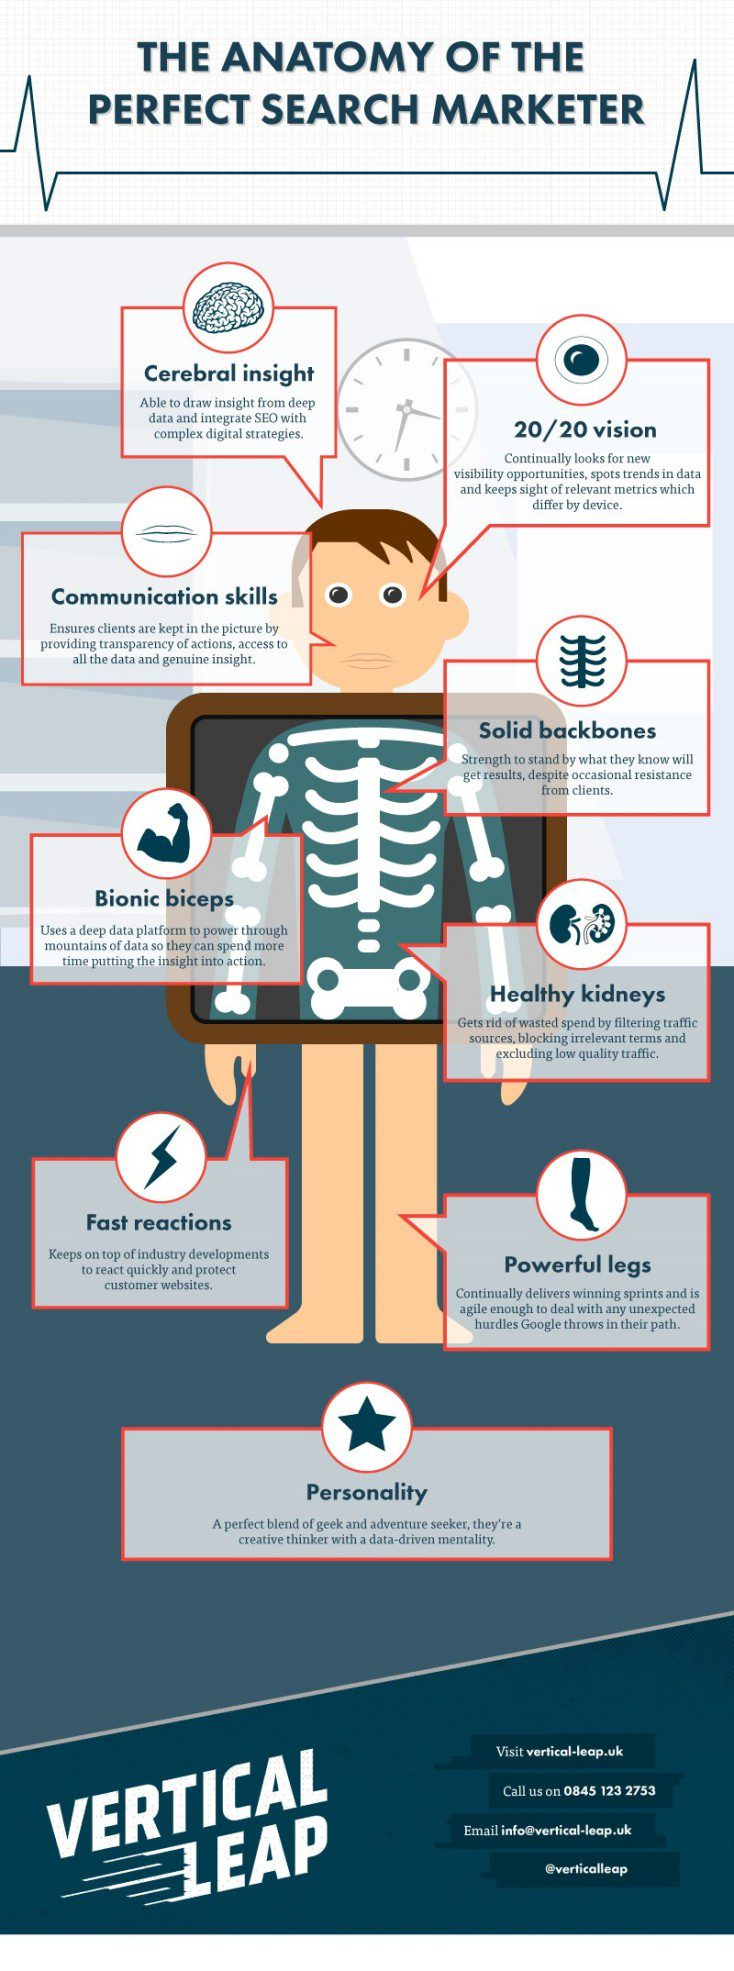 Anatomy of the perfect search marketer